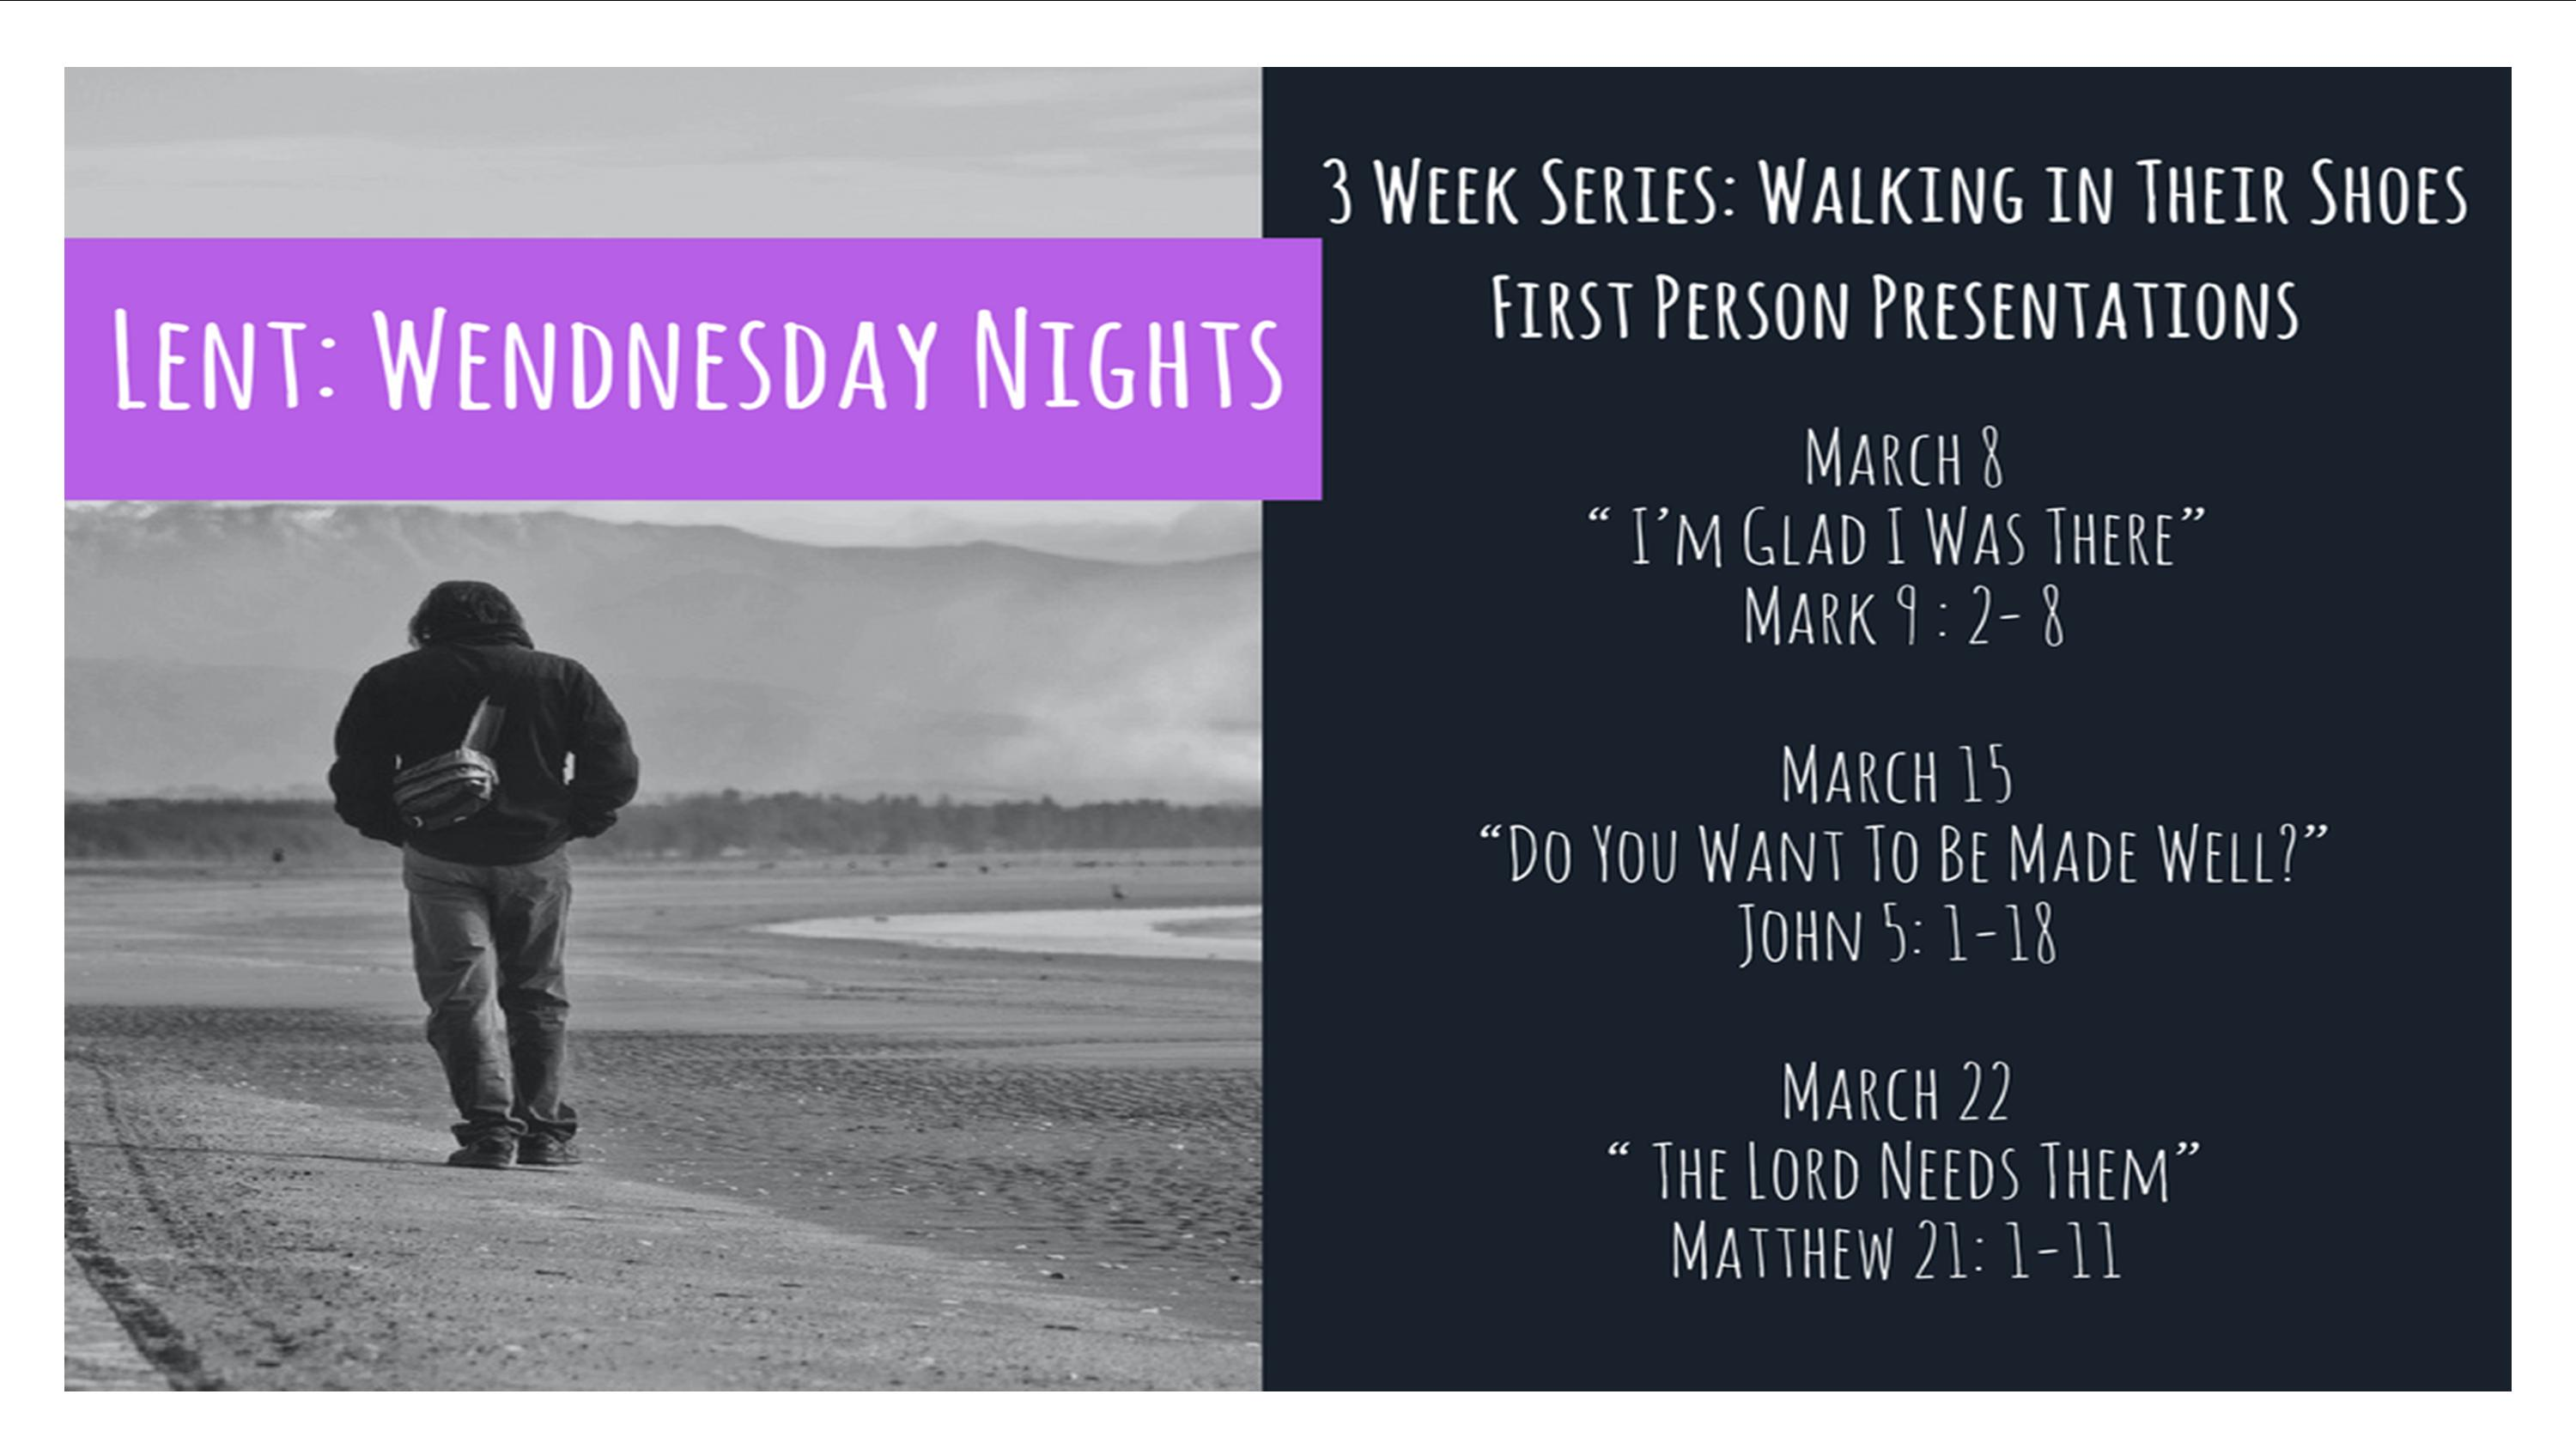 6-Lent-Wed-Nights